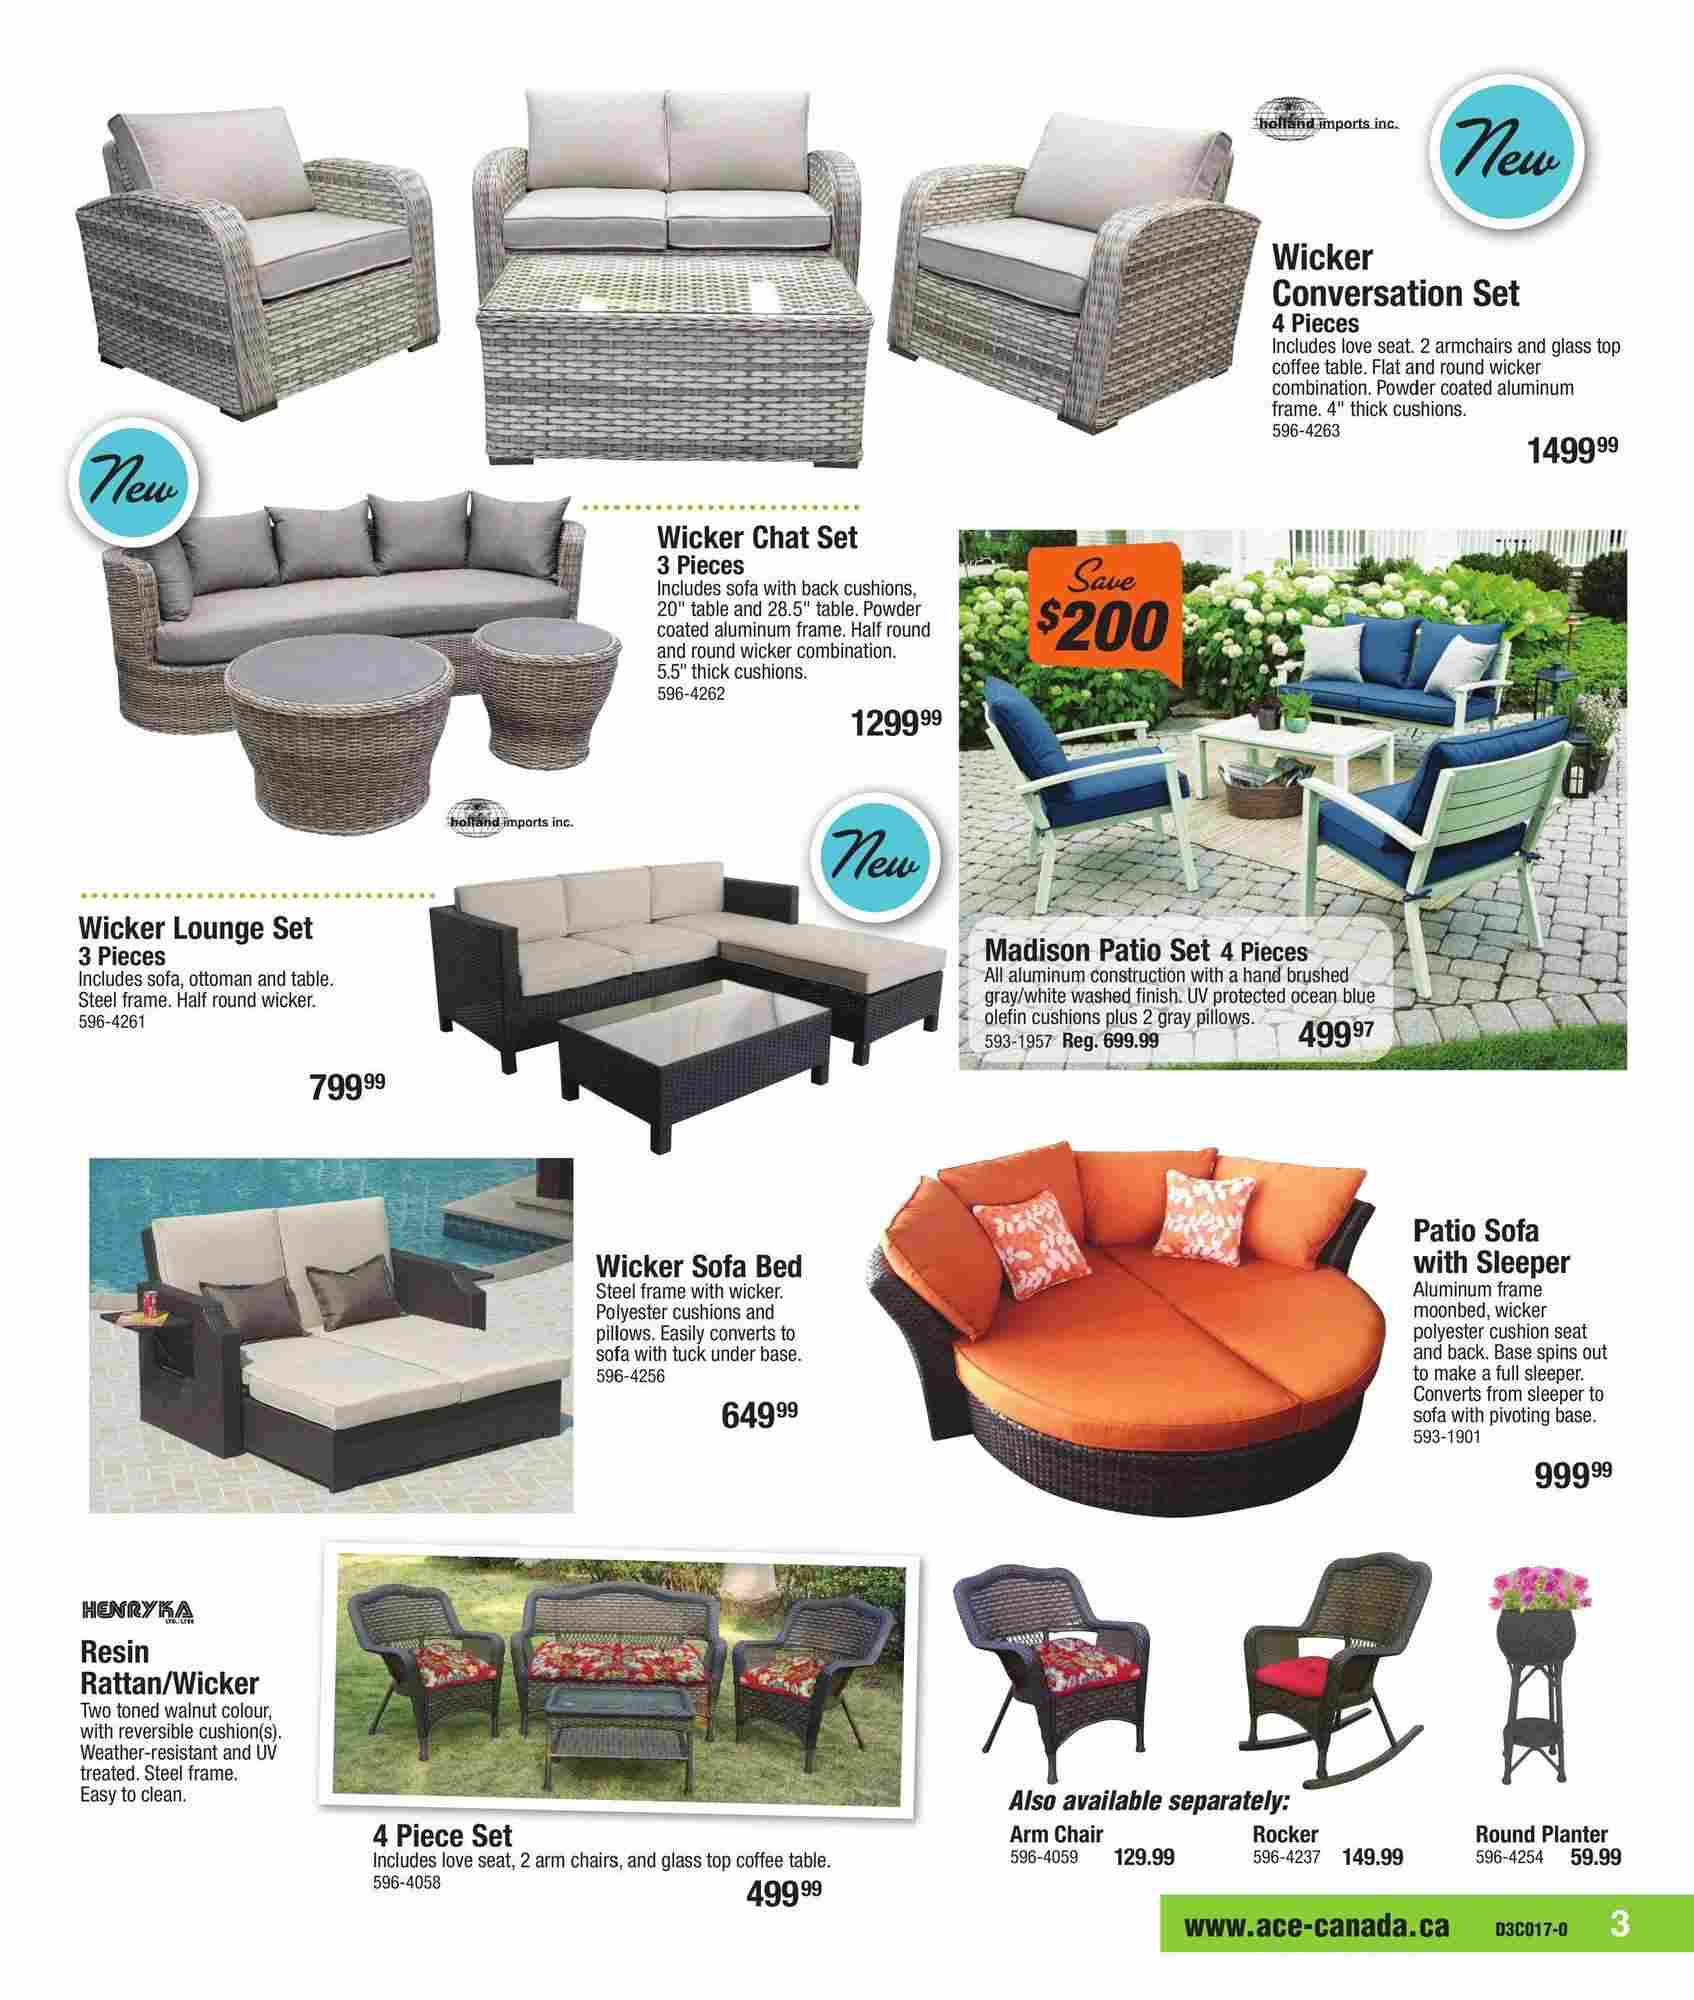 Ace Hardware Canada Outdoor Living Flyer (ON) May 1 - 27 2017 on Ace Outdoor Living id=83066